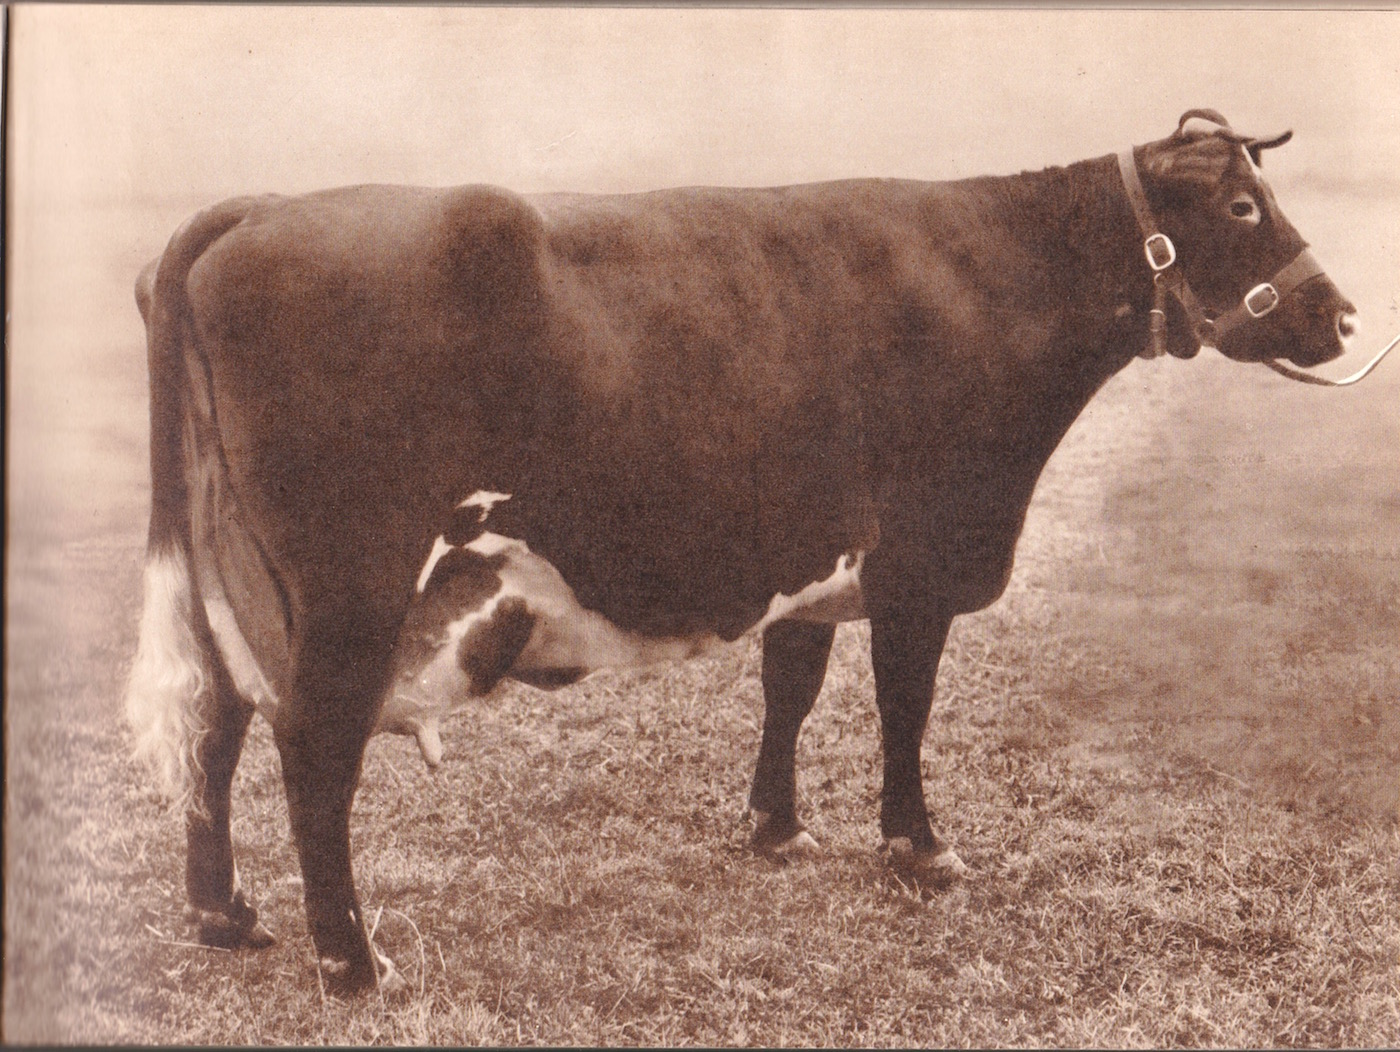 Typical Hub's cow